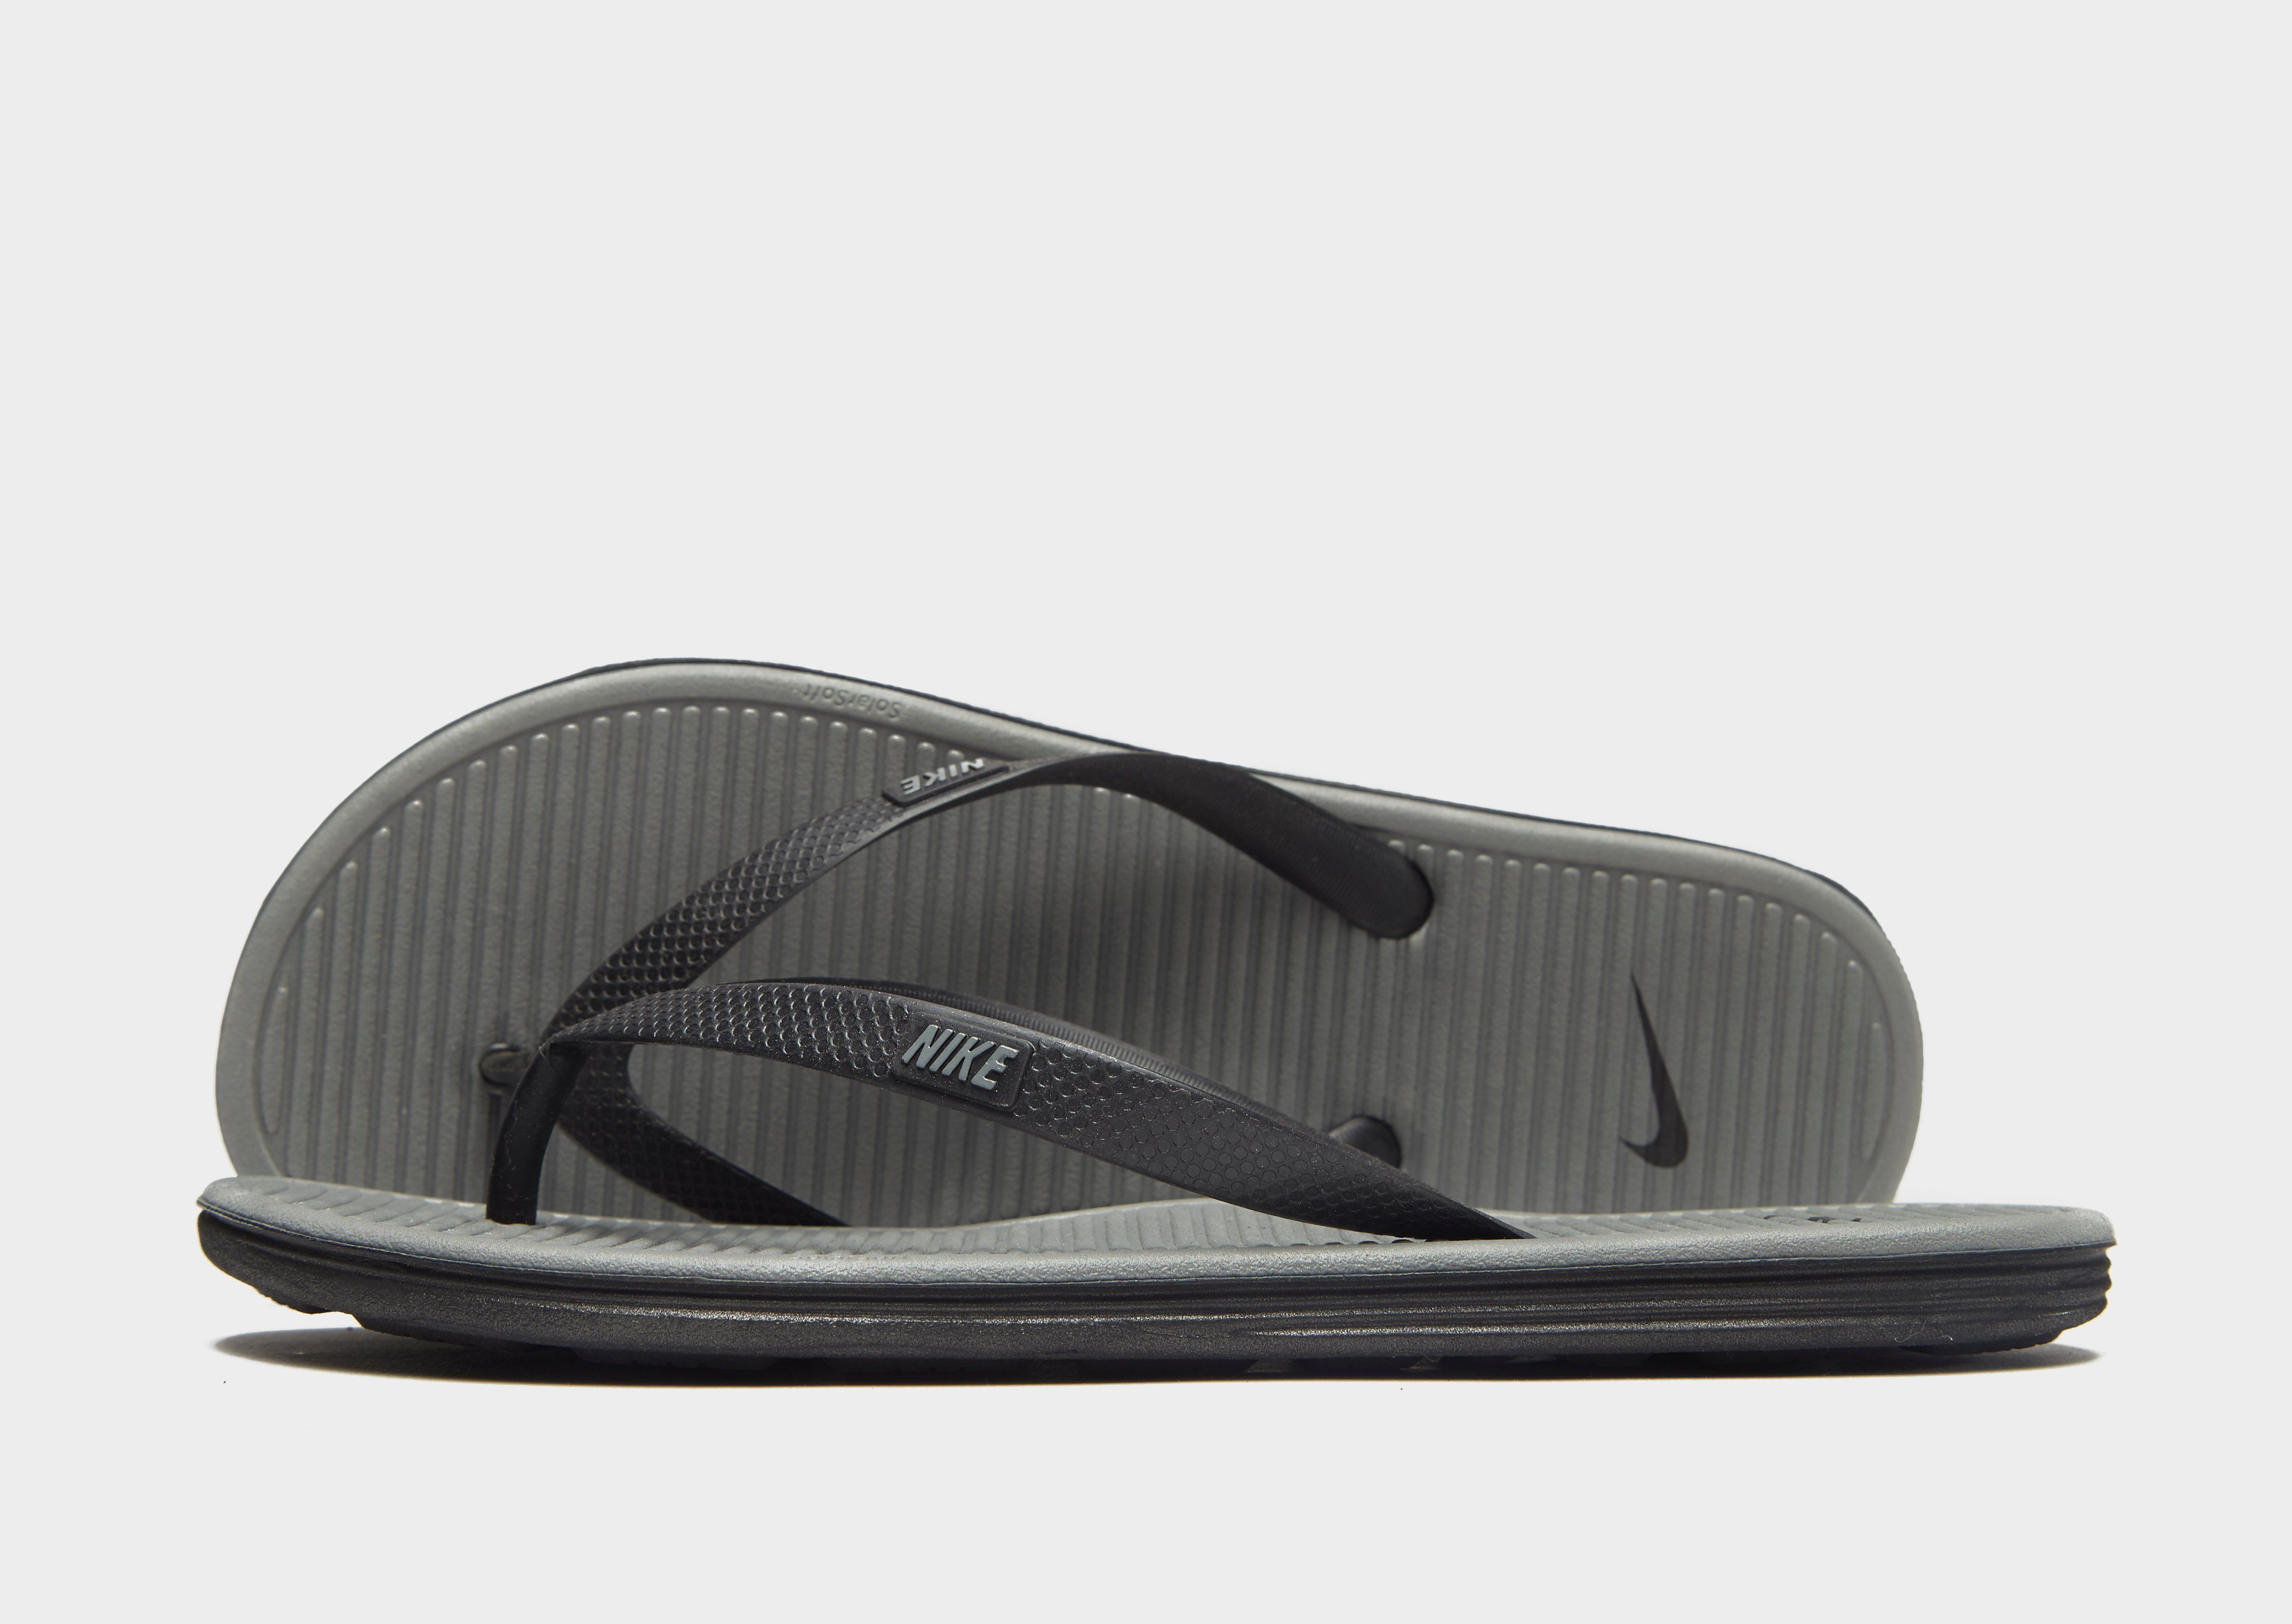 nike solarsoft ii flip flops jd sports. Black Bedroom Furniture Sets. Home Design Ideas